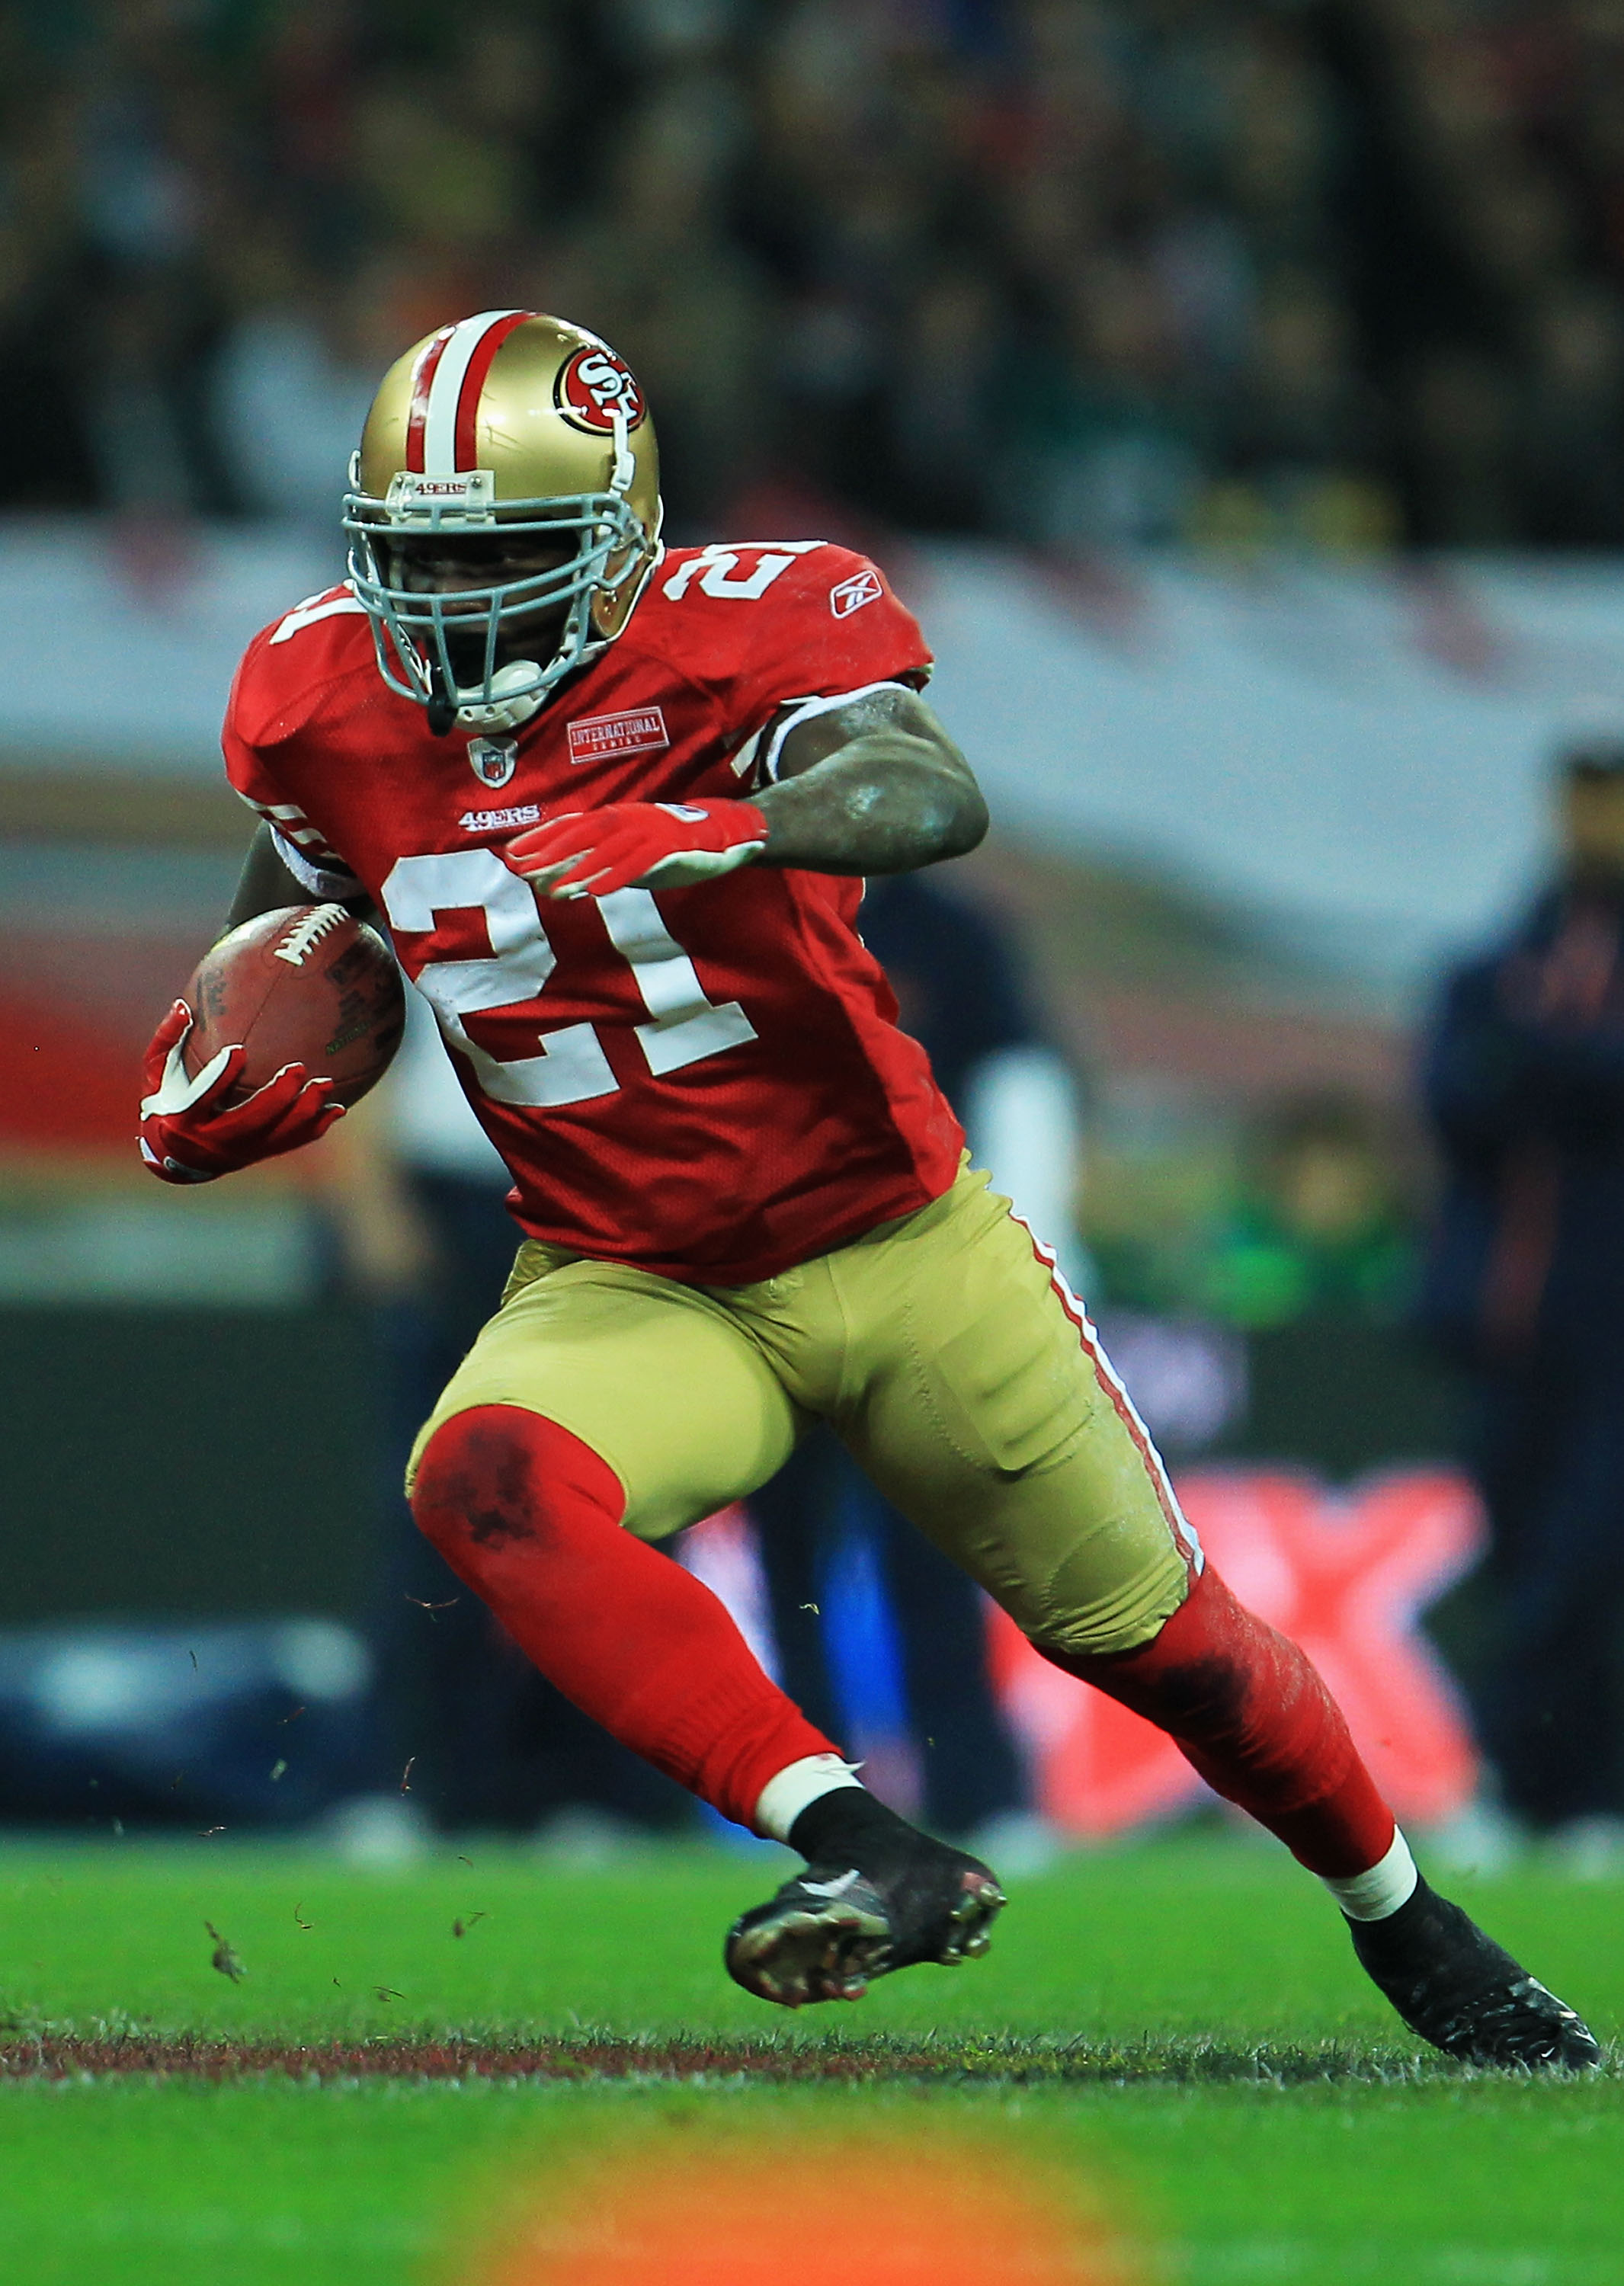 LONDON, ENGLAND - OCTOBER 31:  Frank Gore #21 of San Francisco 49ers runs with the ball during the NFL International Series match between Denver Broncos and San Francisco 49ers at Wembley Stadium on October 31, 2010 in London, England. This is the fourth